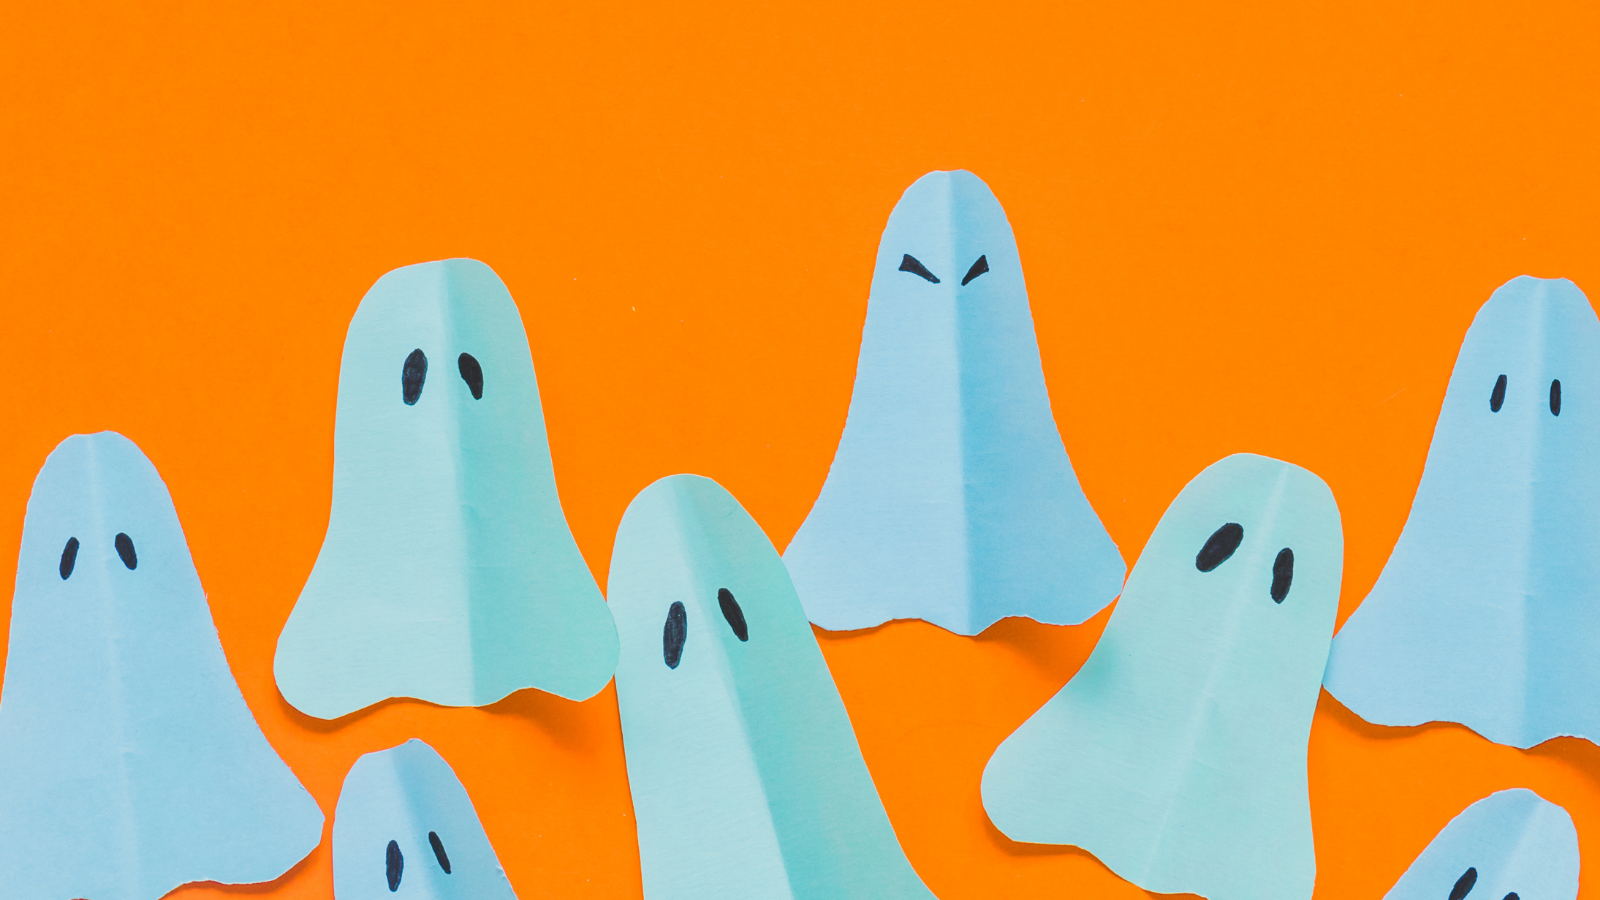 The Ghosting Epidemic: Why ghosting happens